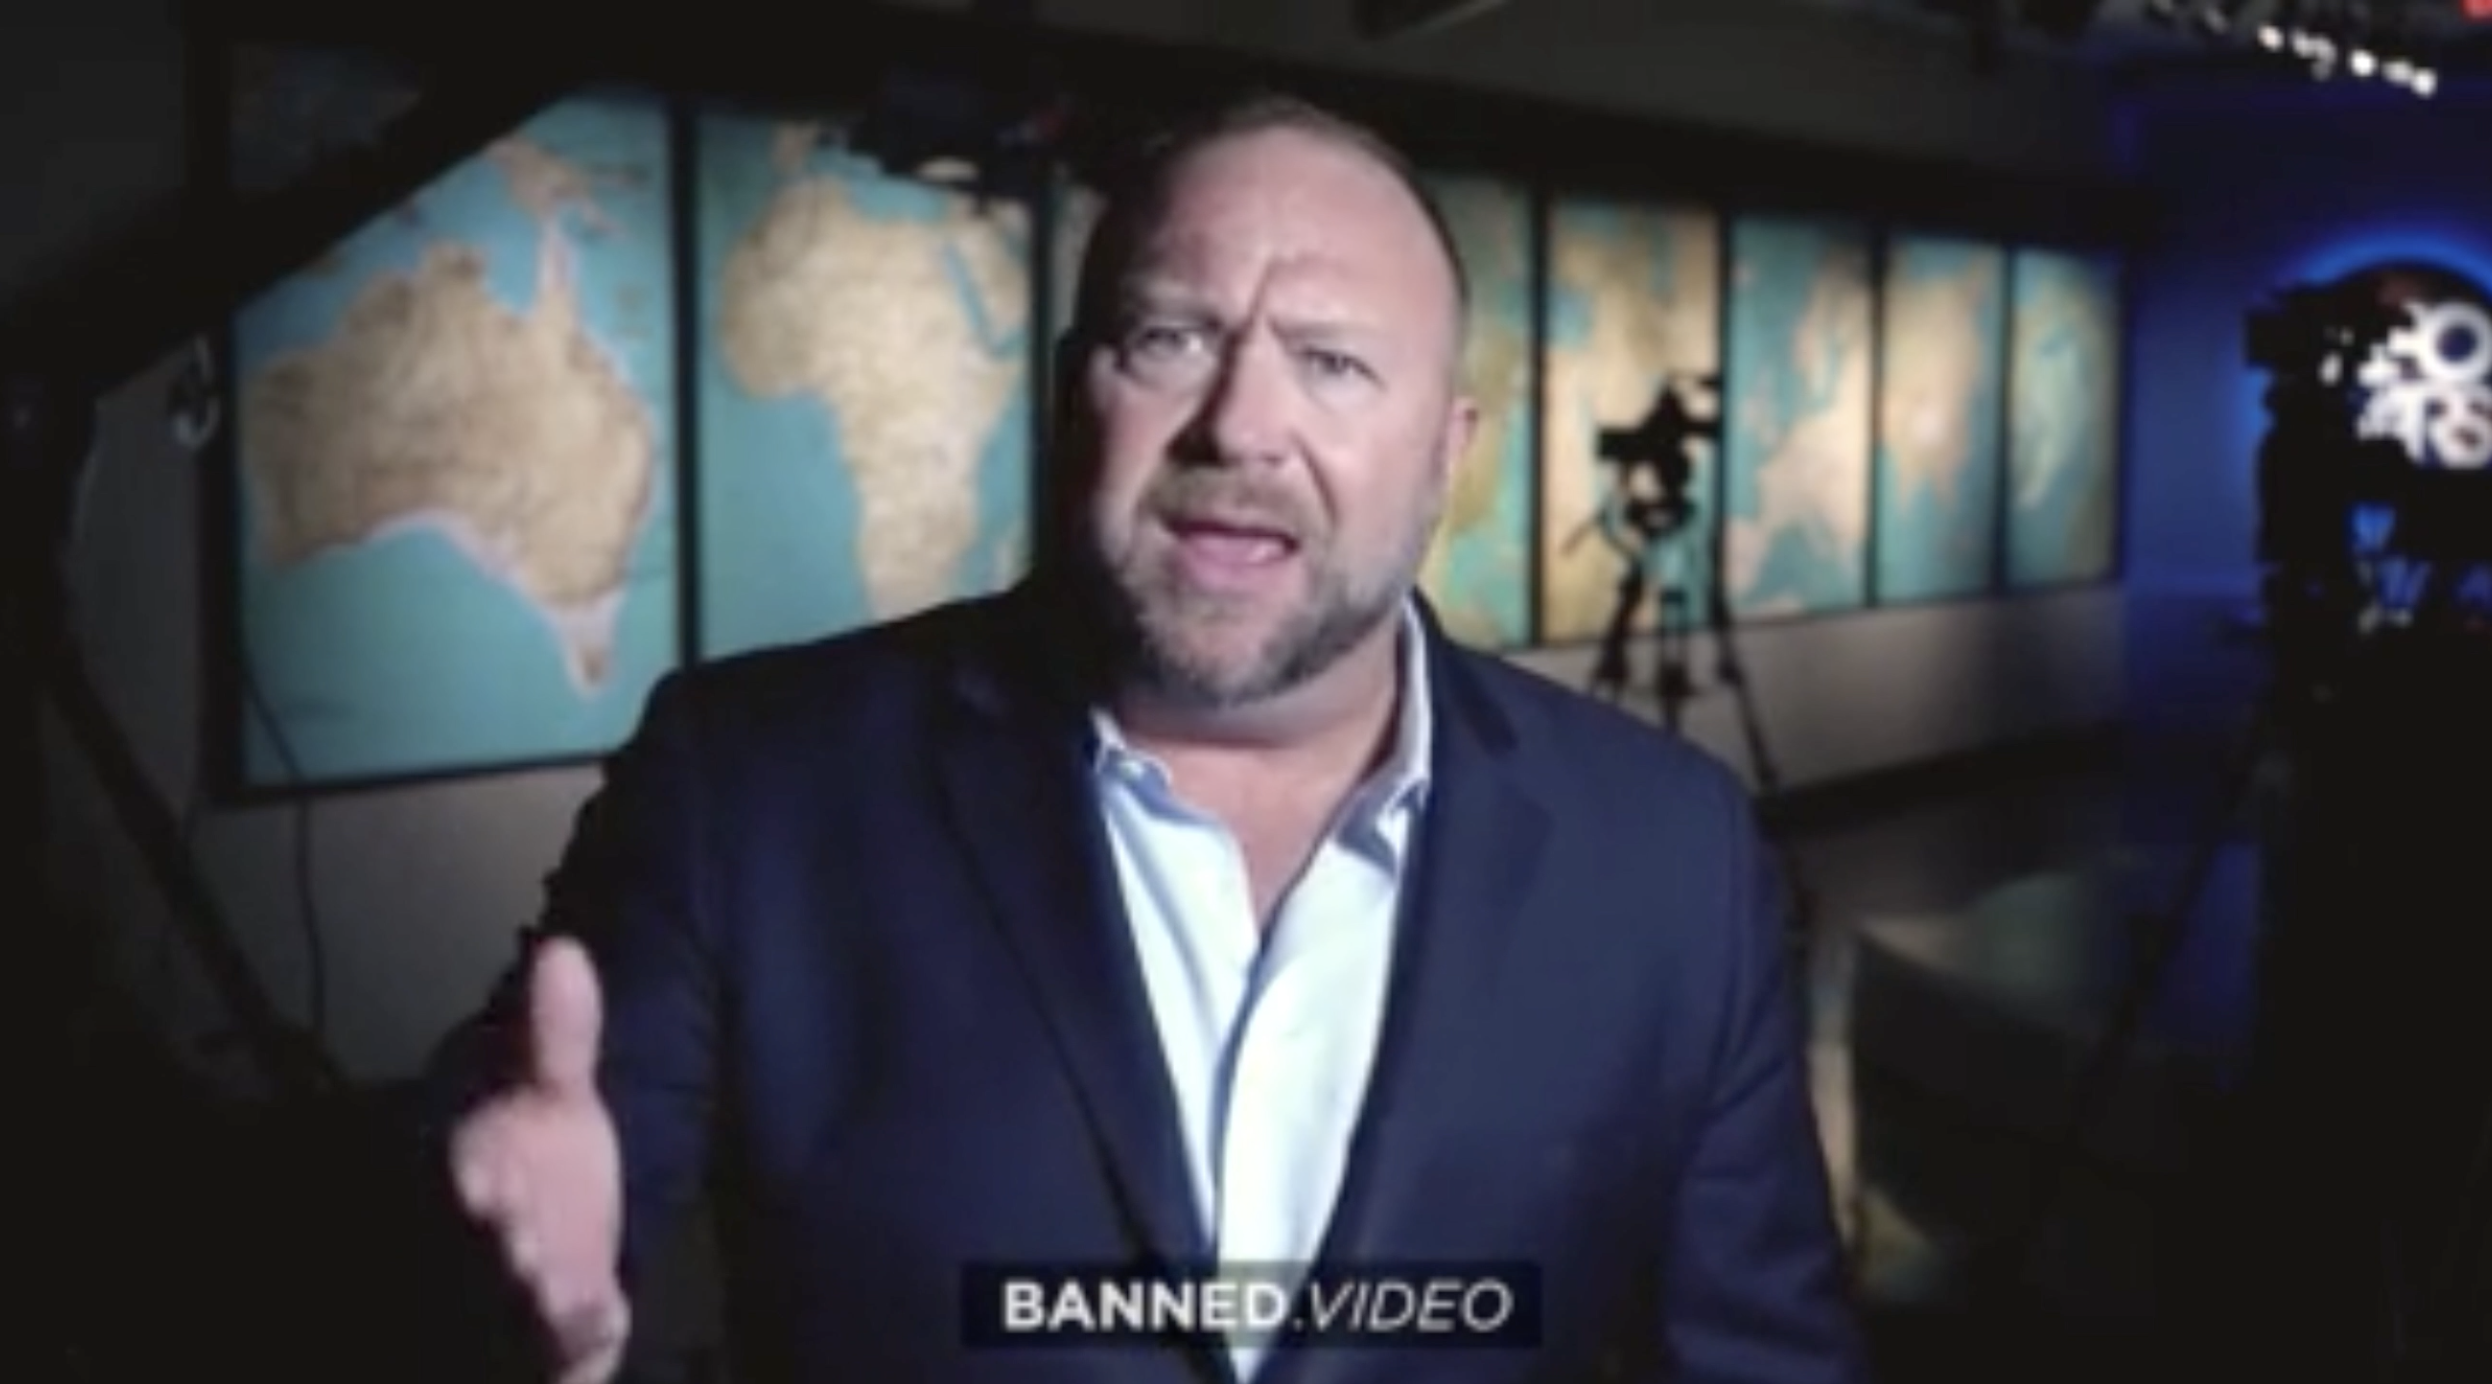 Alex Jonesw Infowars 5 17 2020